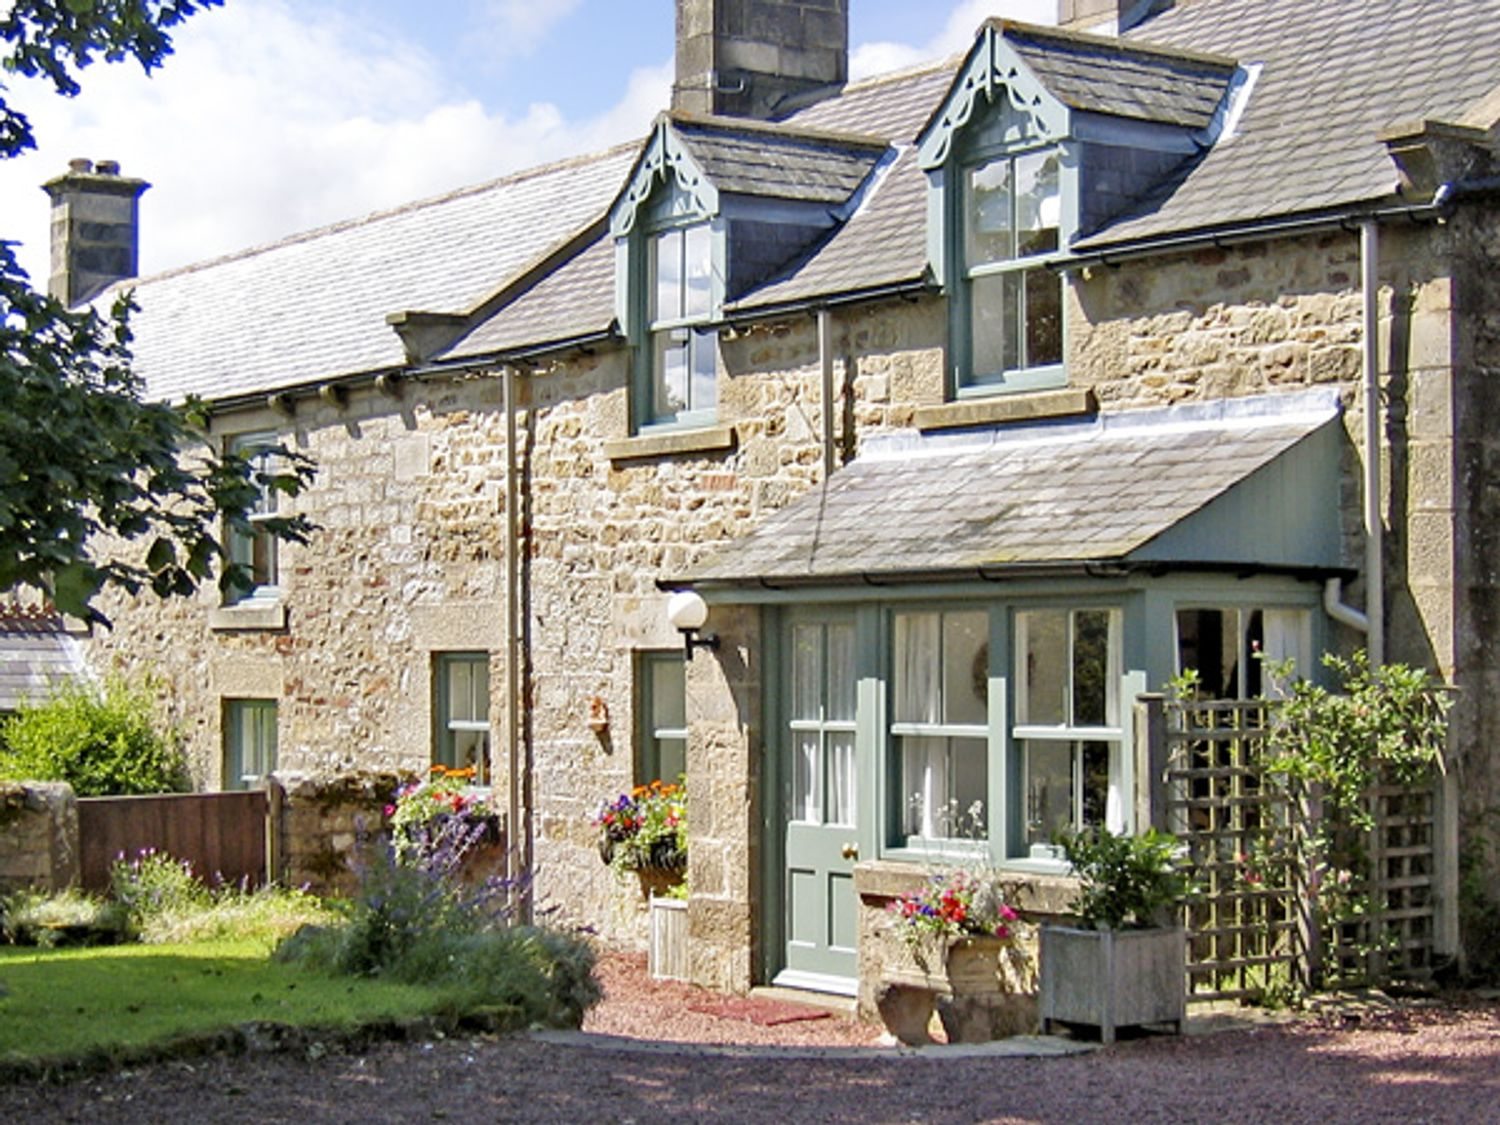 Northumberland Holiday Cottages: Townfoot Cottage, Elsdon nr. Otterburn | Sykes Cottages